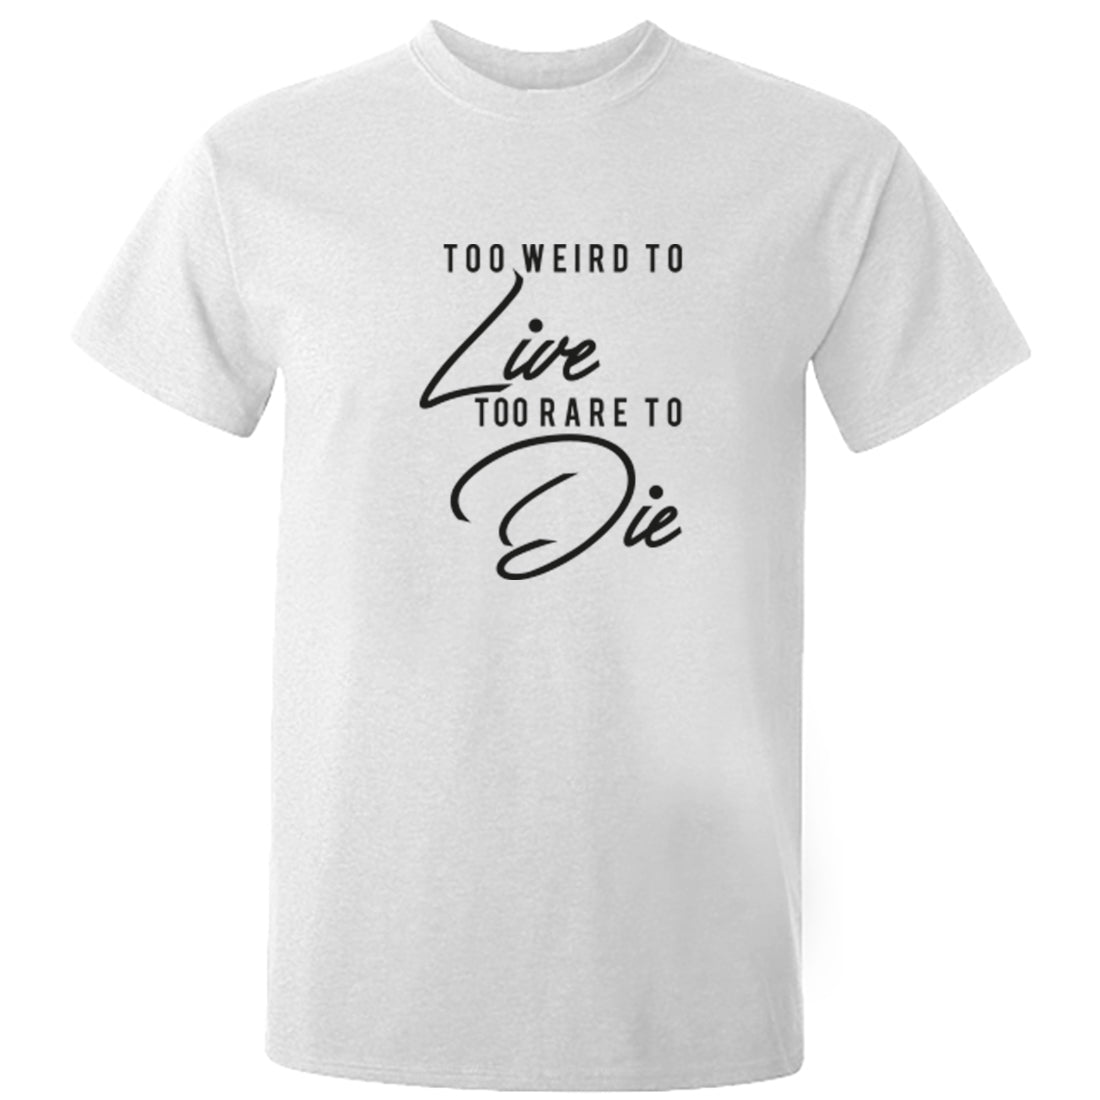 Too Weird To Live Too Rare To Die Unisex Fit T-Shirt K1958 - Illustrated Identity Ltd.